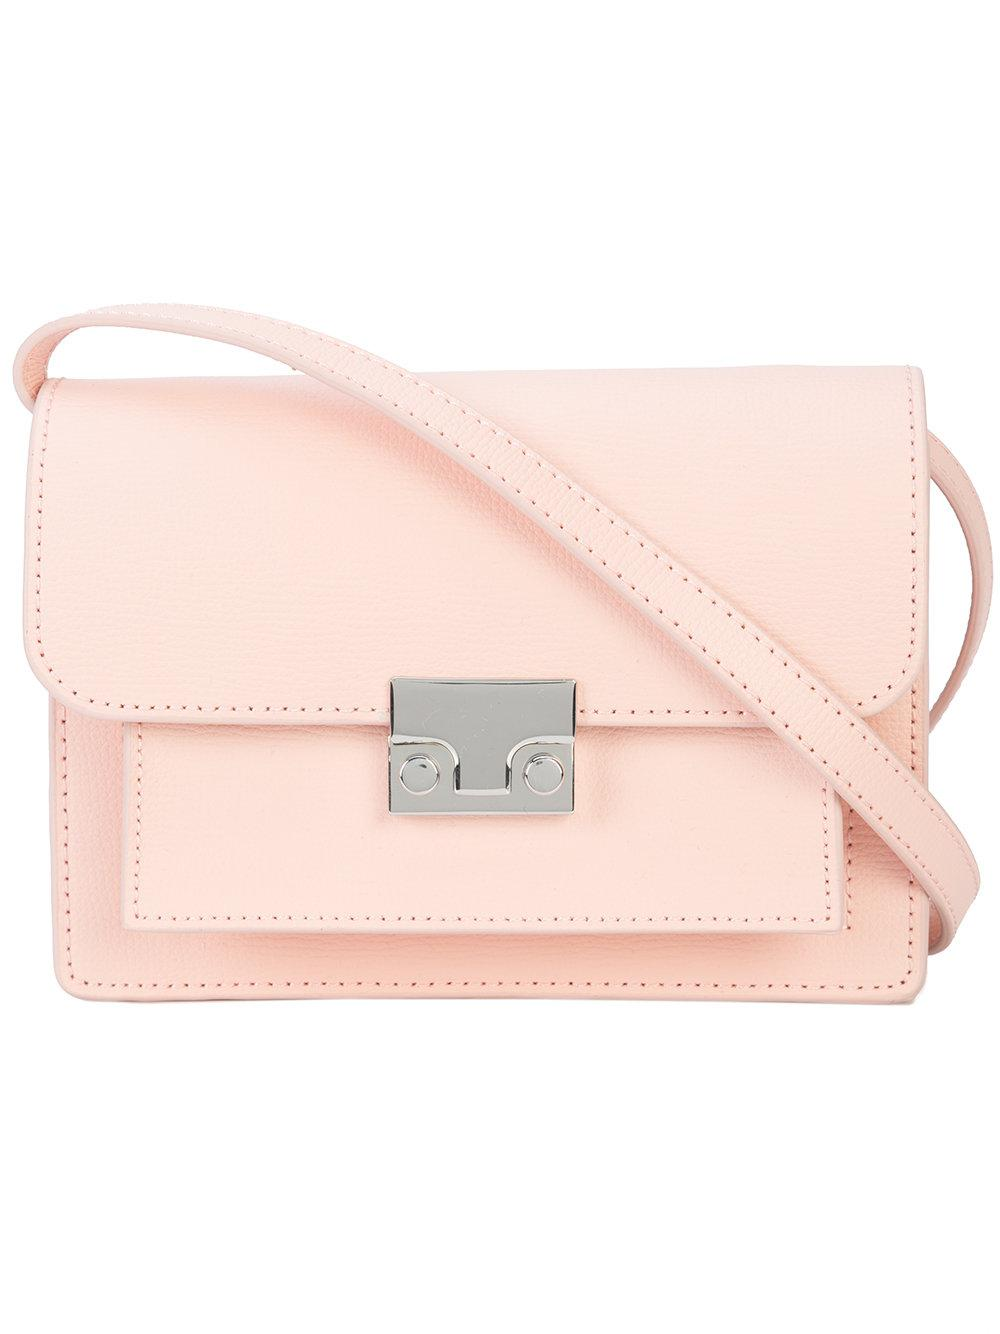 Loeffler Randall Structured Shoulder Bag